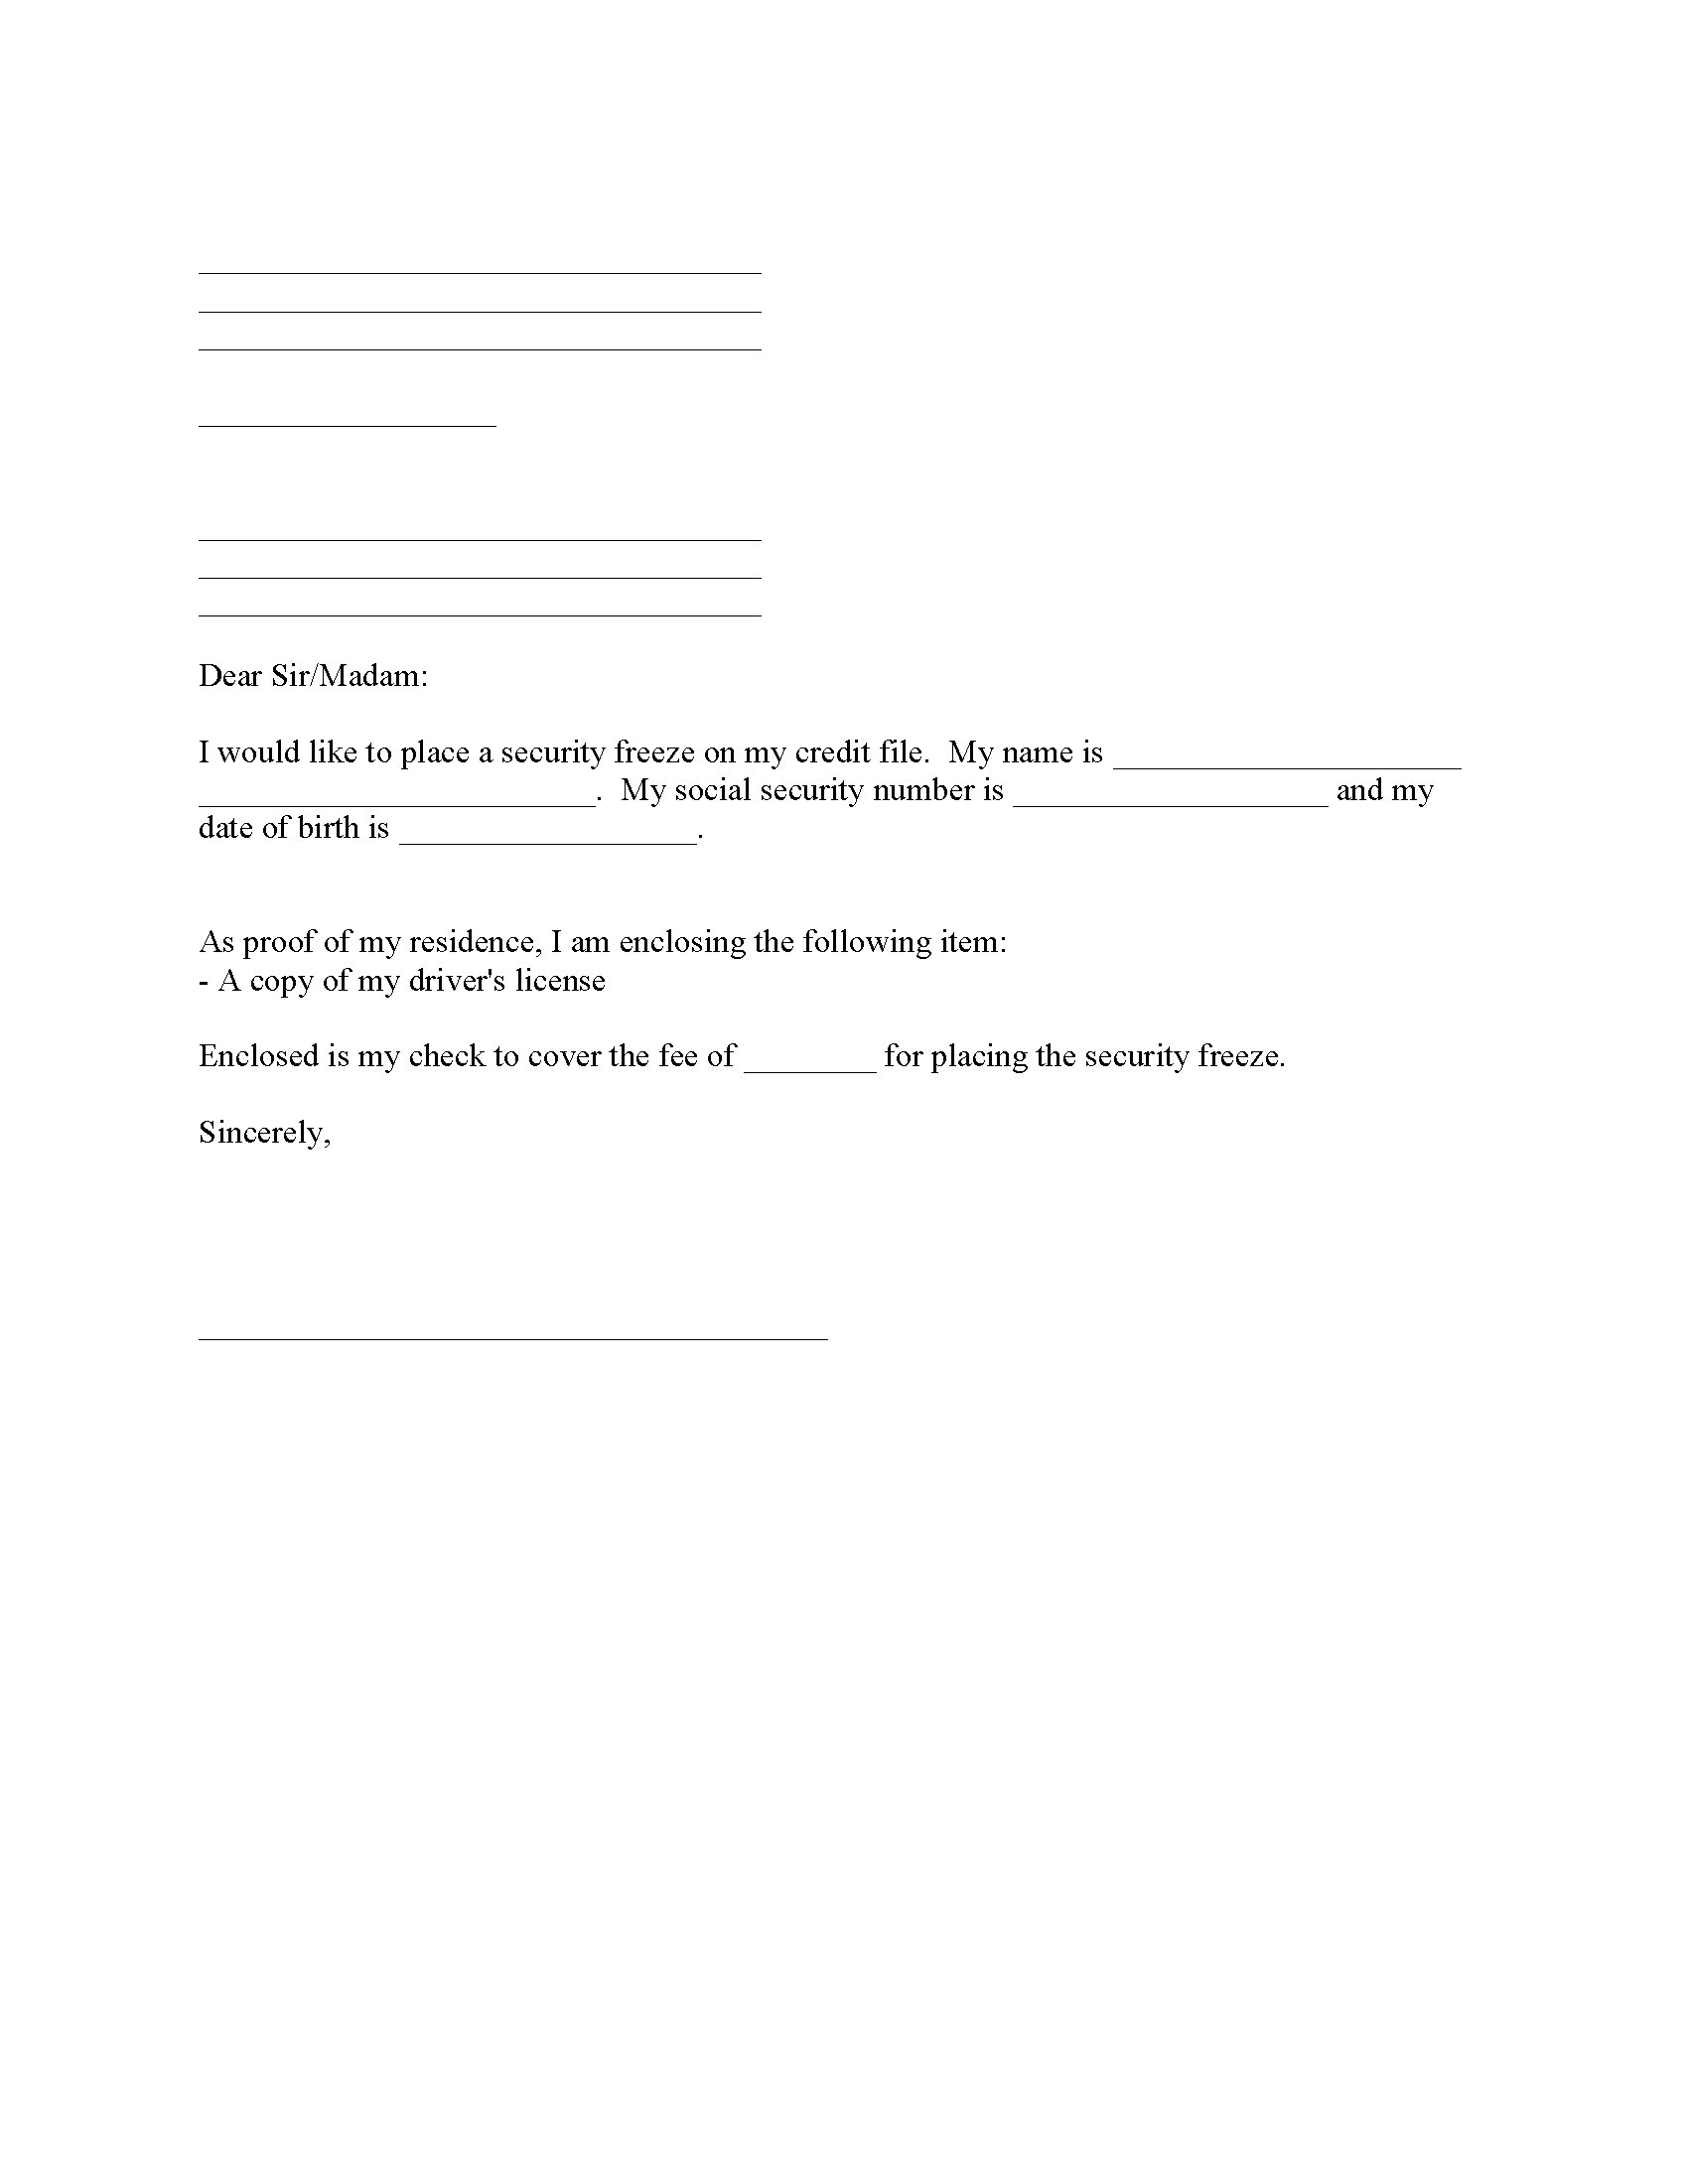 Credit Freeze Request - Word - Free Printable Legal Forms Intended For Check Request Template Word